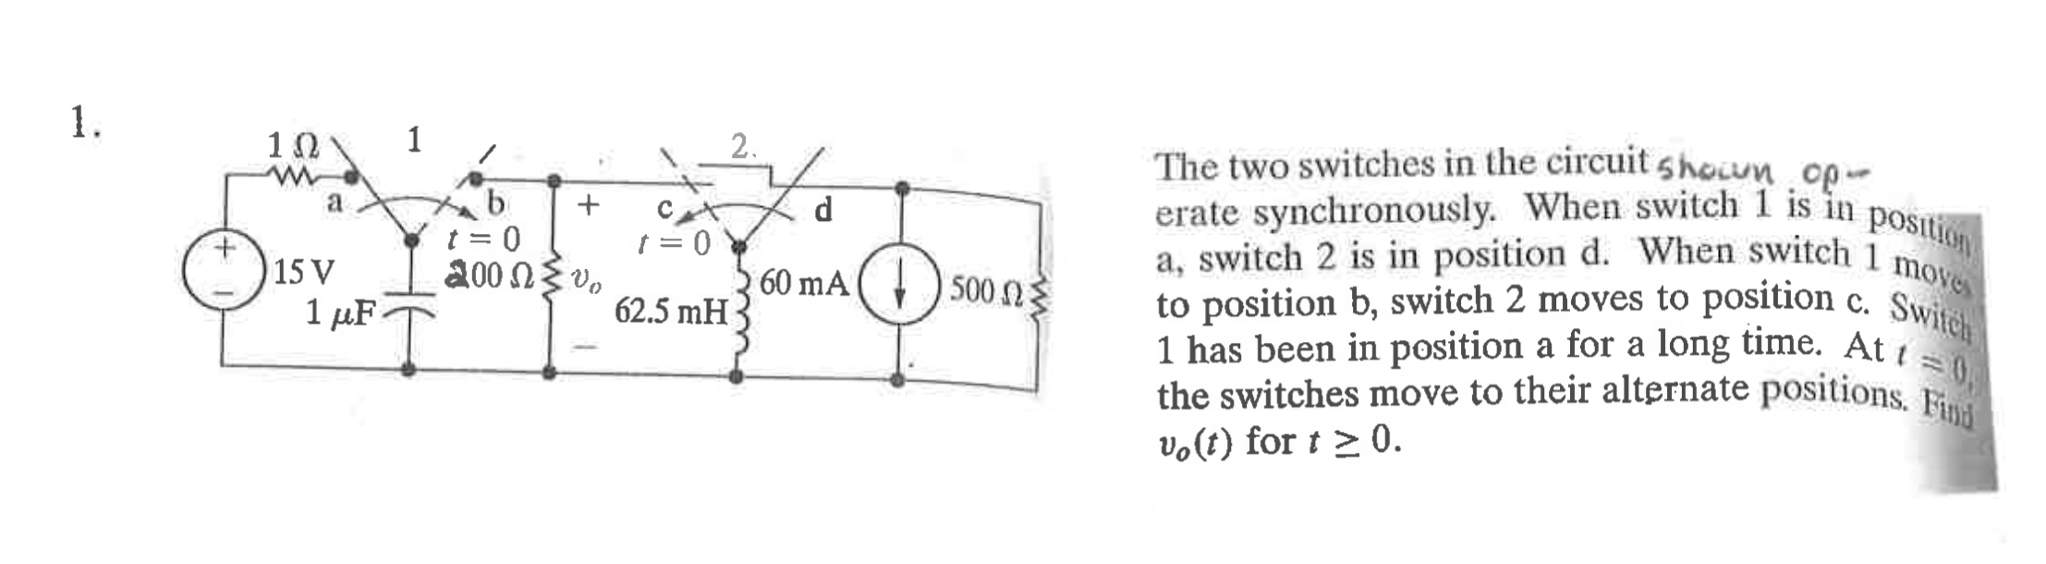 Solved: The Two Switches In The Circuit Shown Operate Sync ...